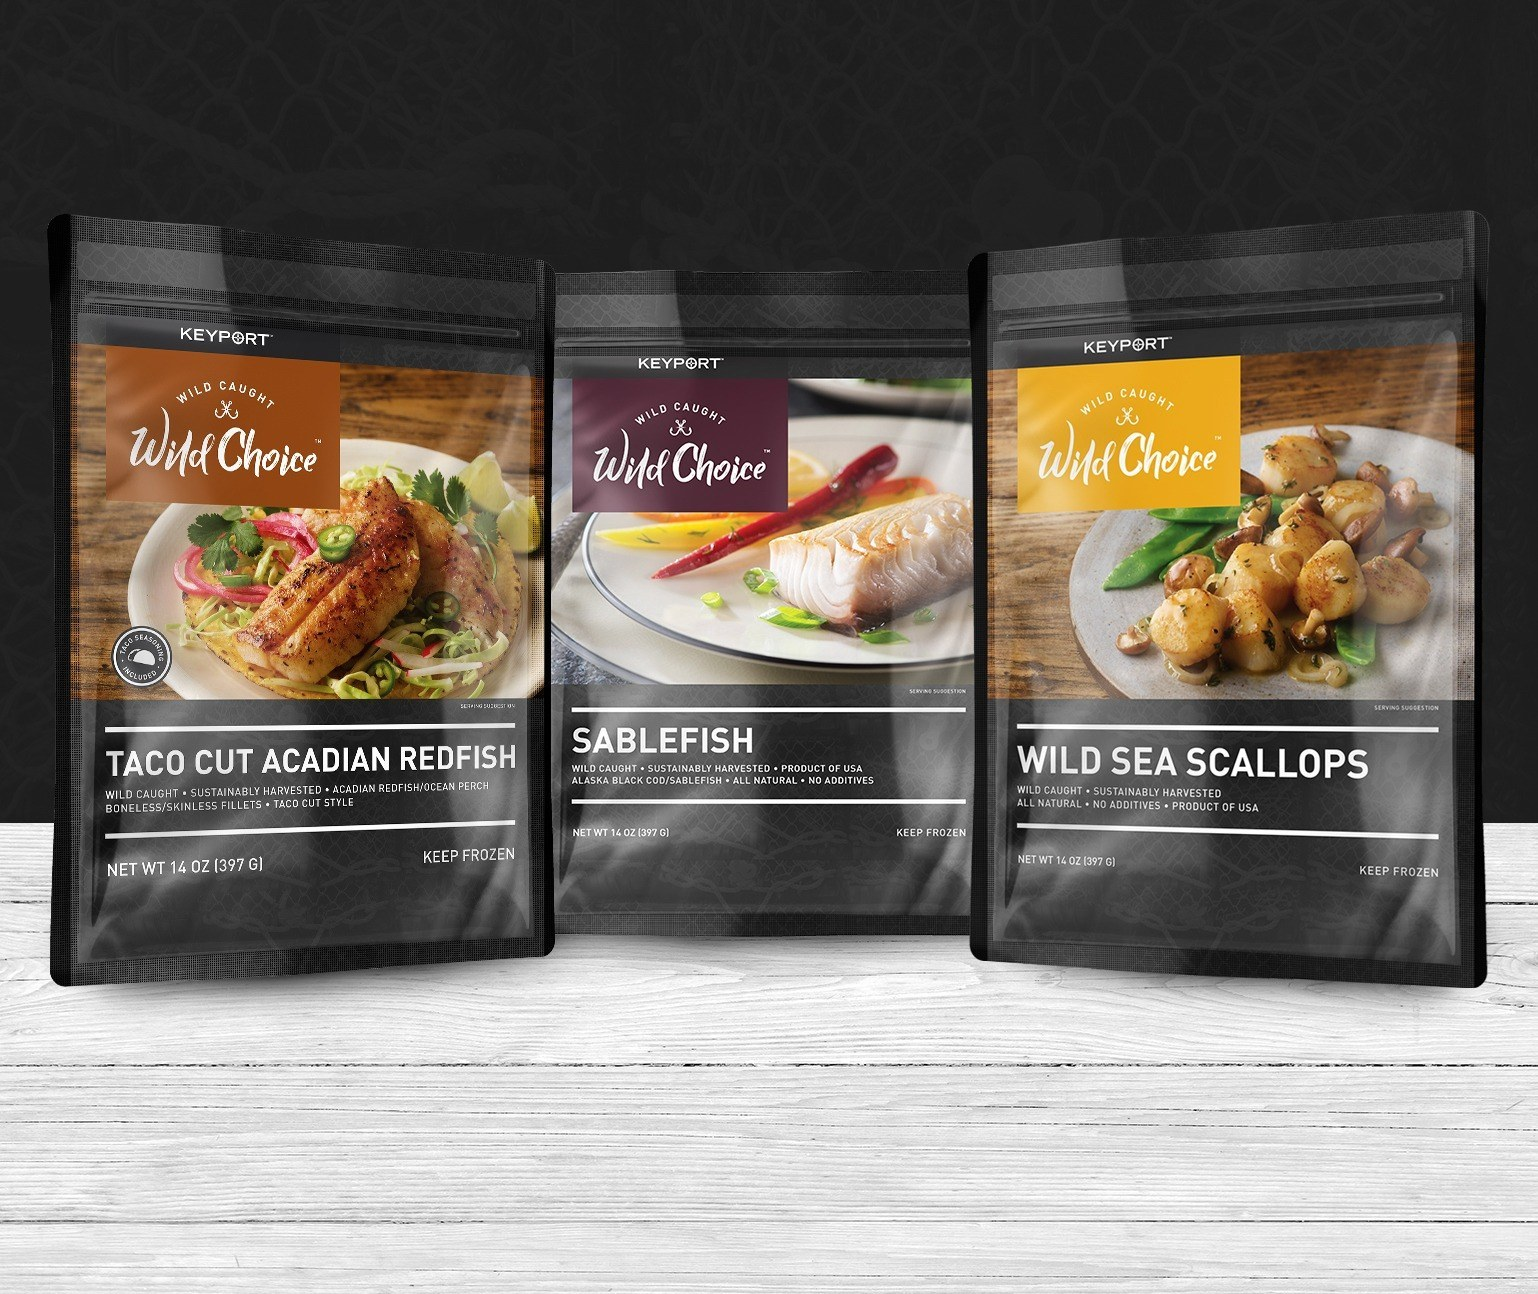 Three black seafood bags on a black and grey background